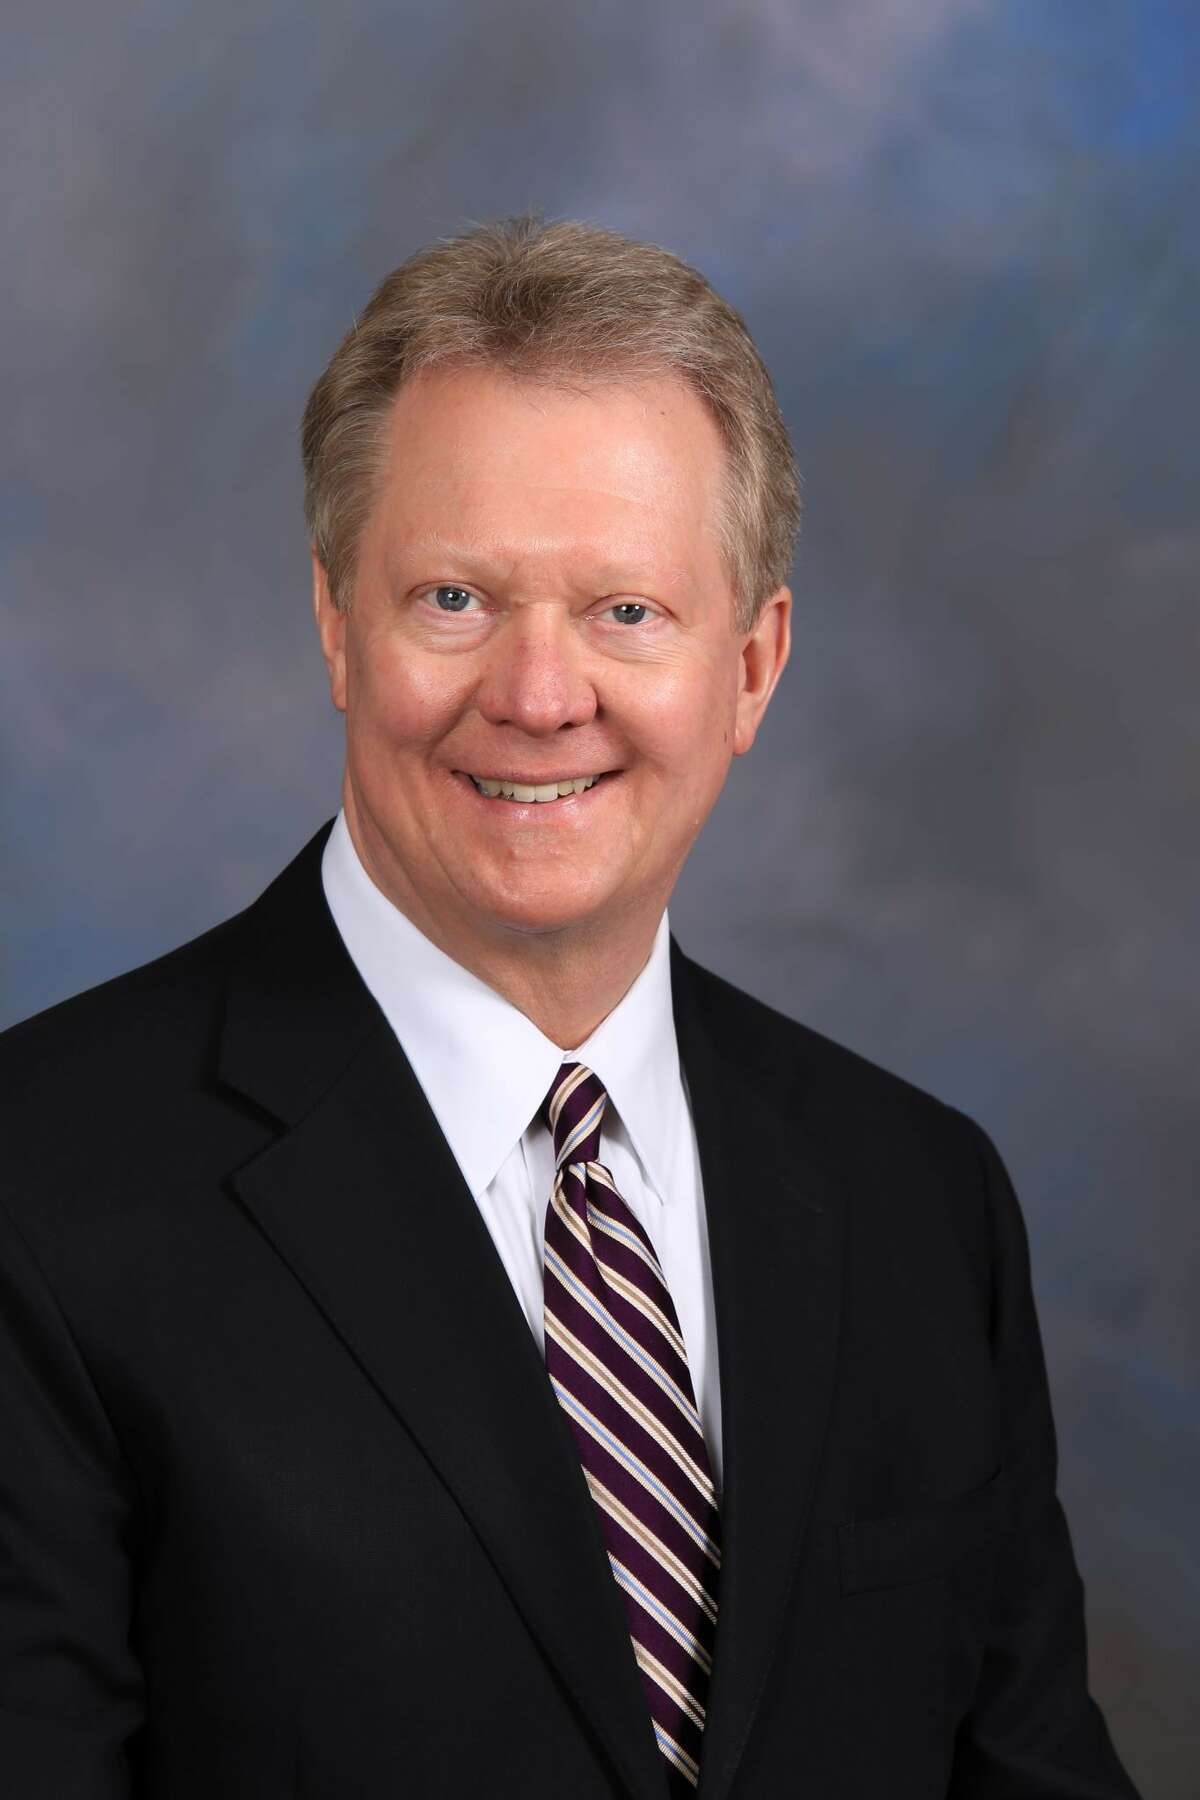 Russell Meyers is president and CEO of Midland Health